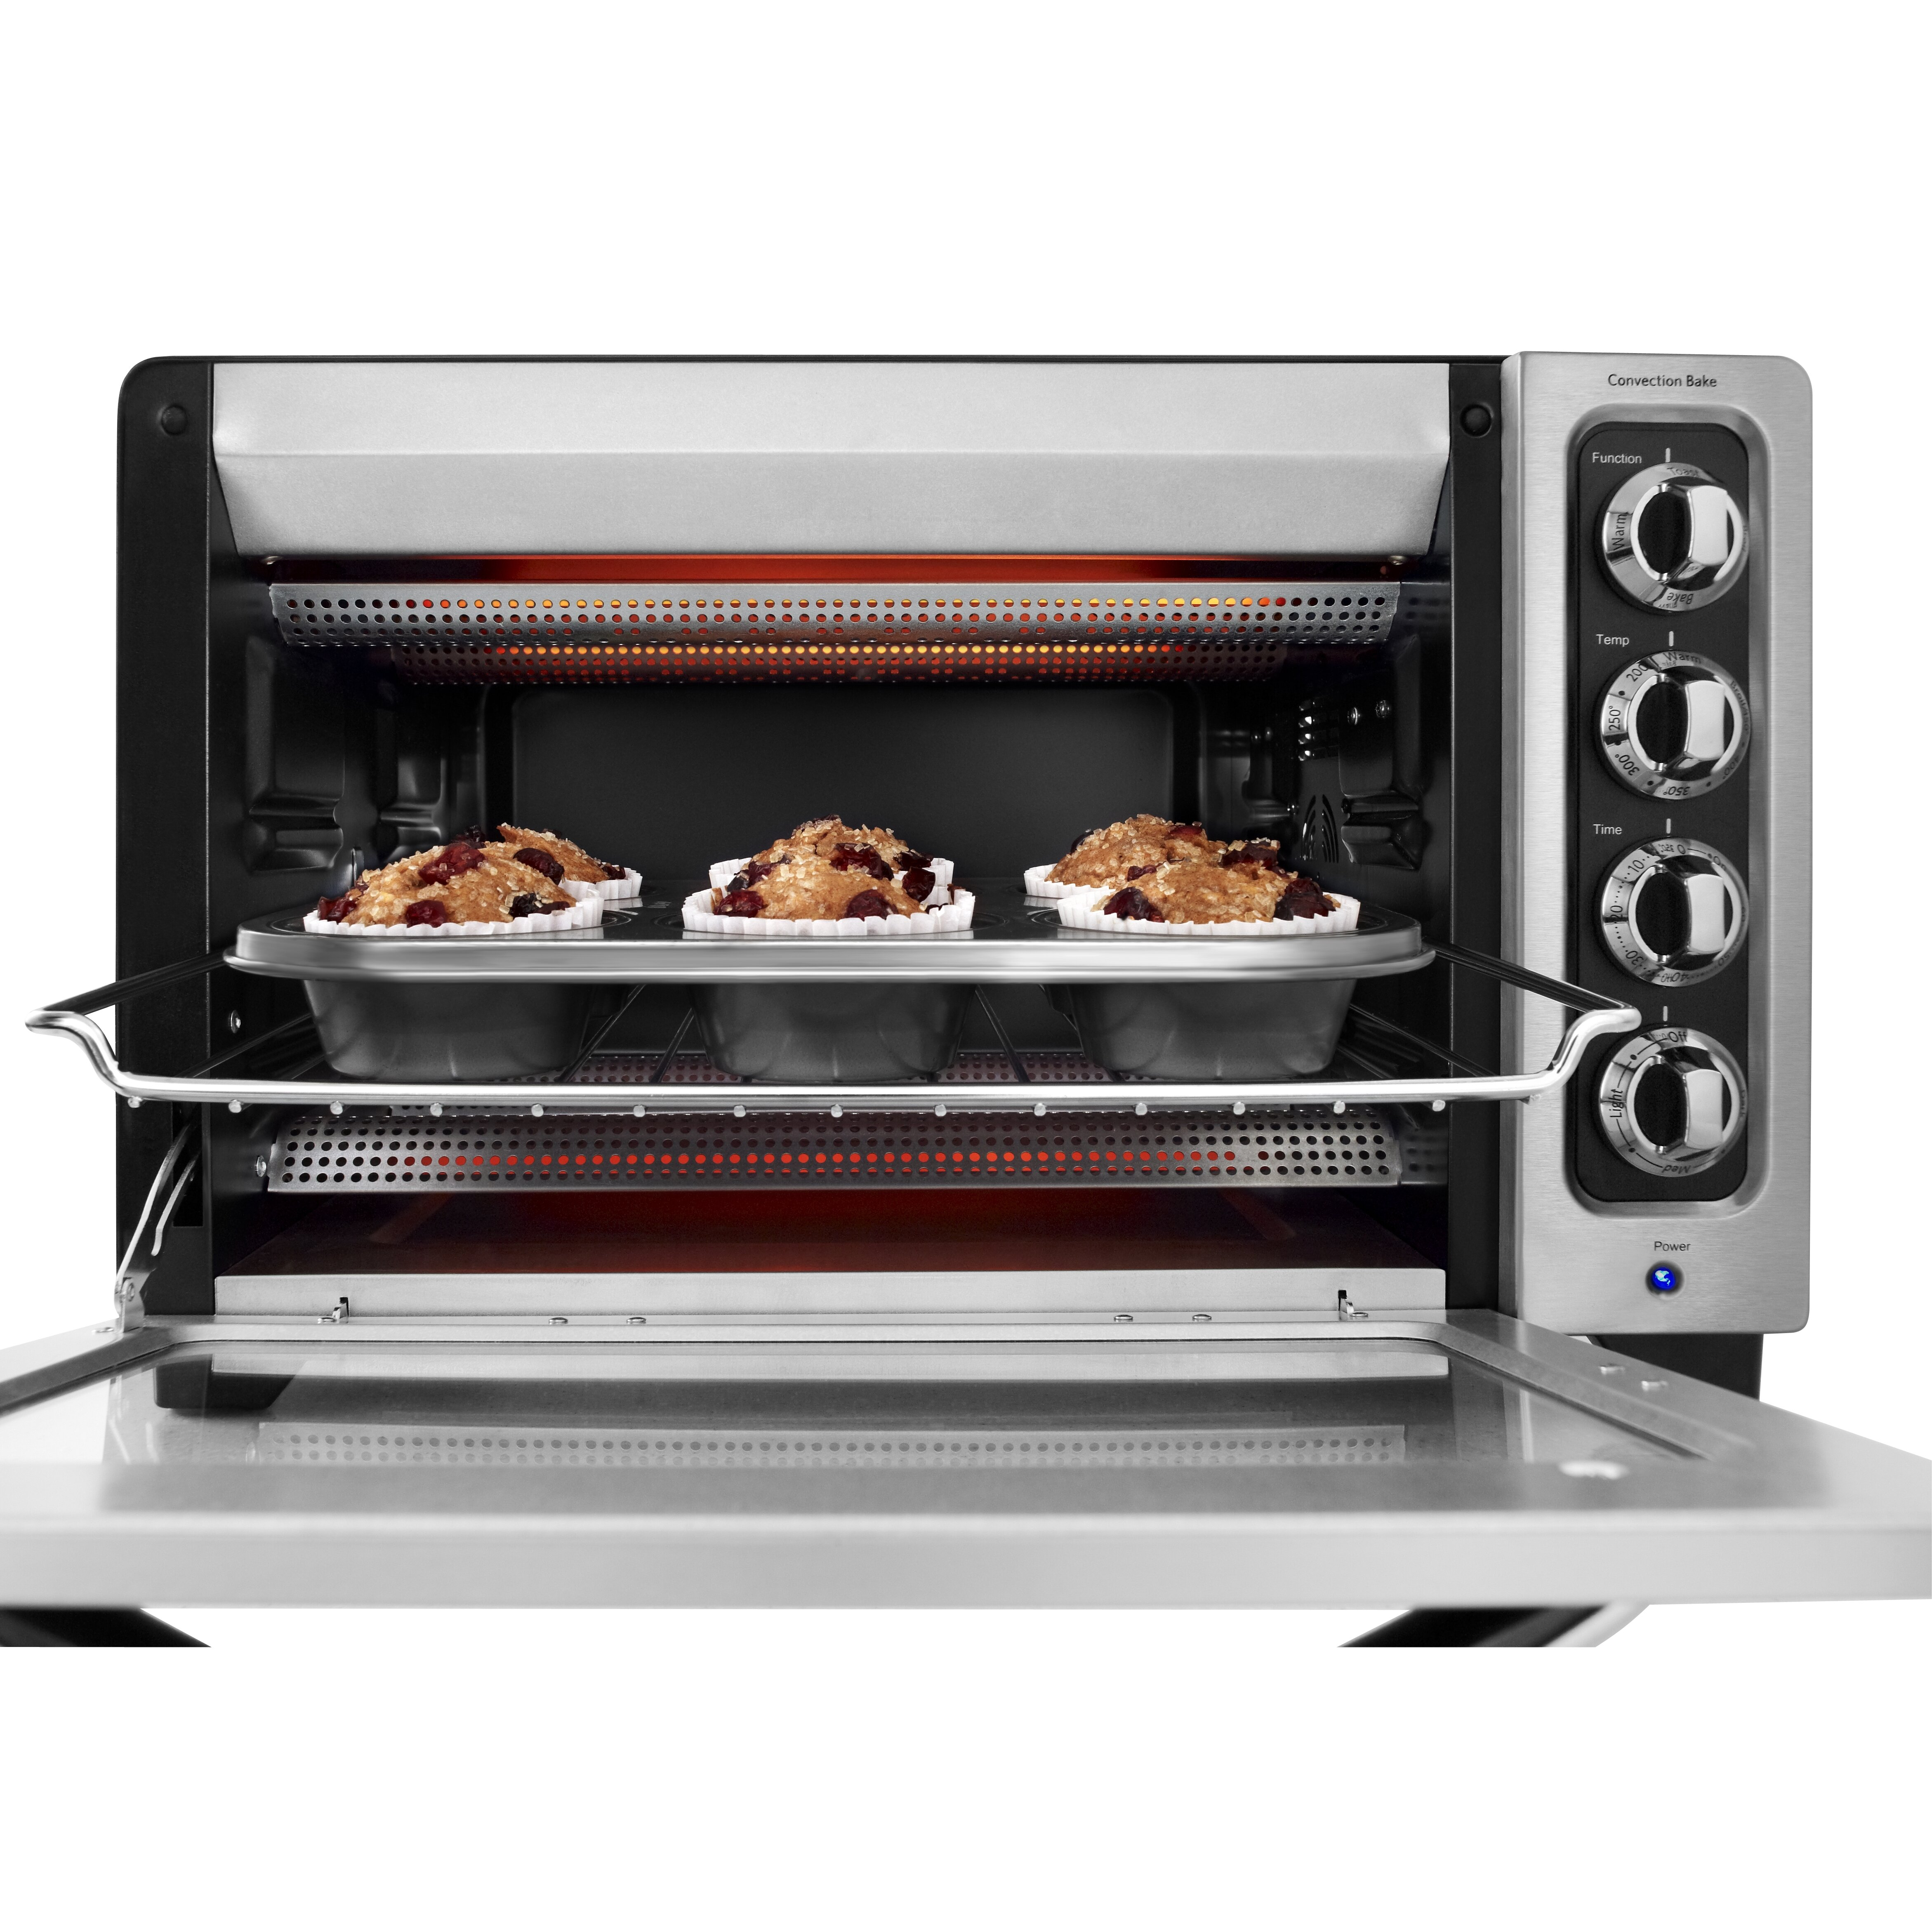 Countertop Oven Toaster : KitchenAid Countertop Toaster Oven & Reviews Wayfair